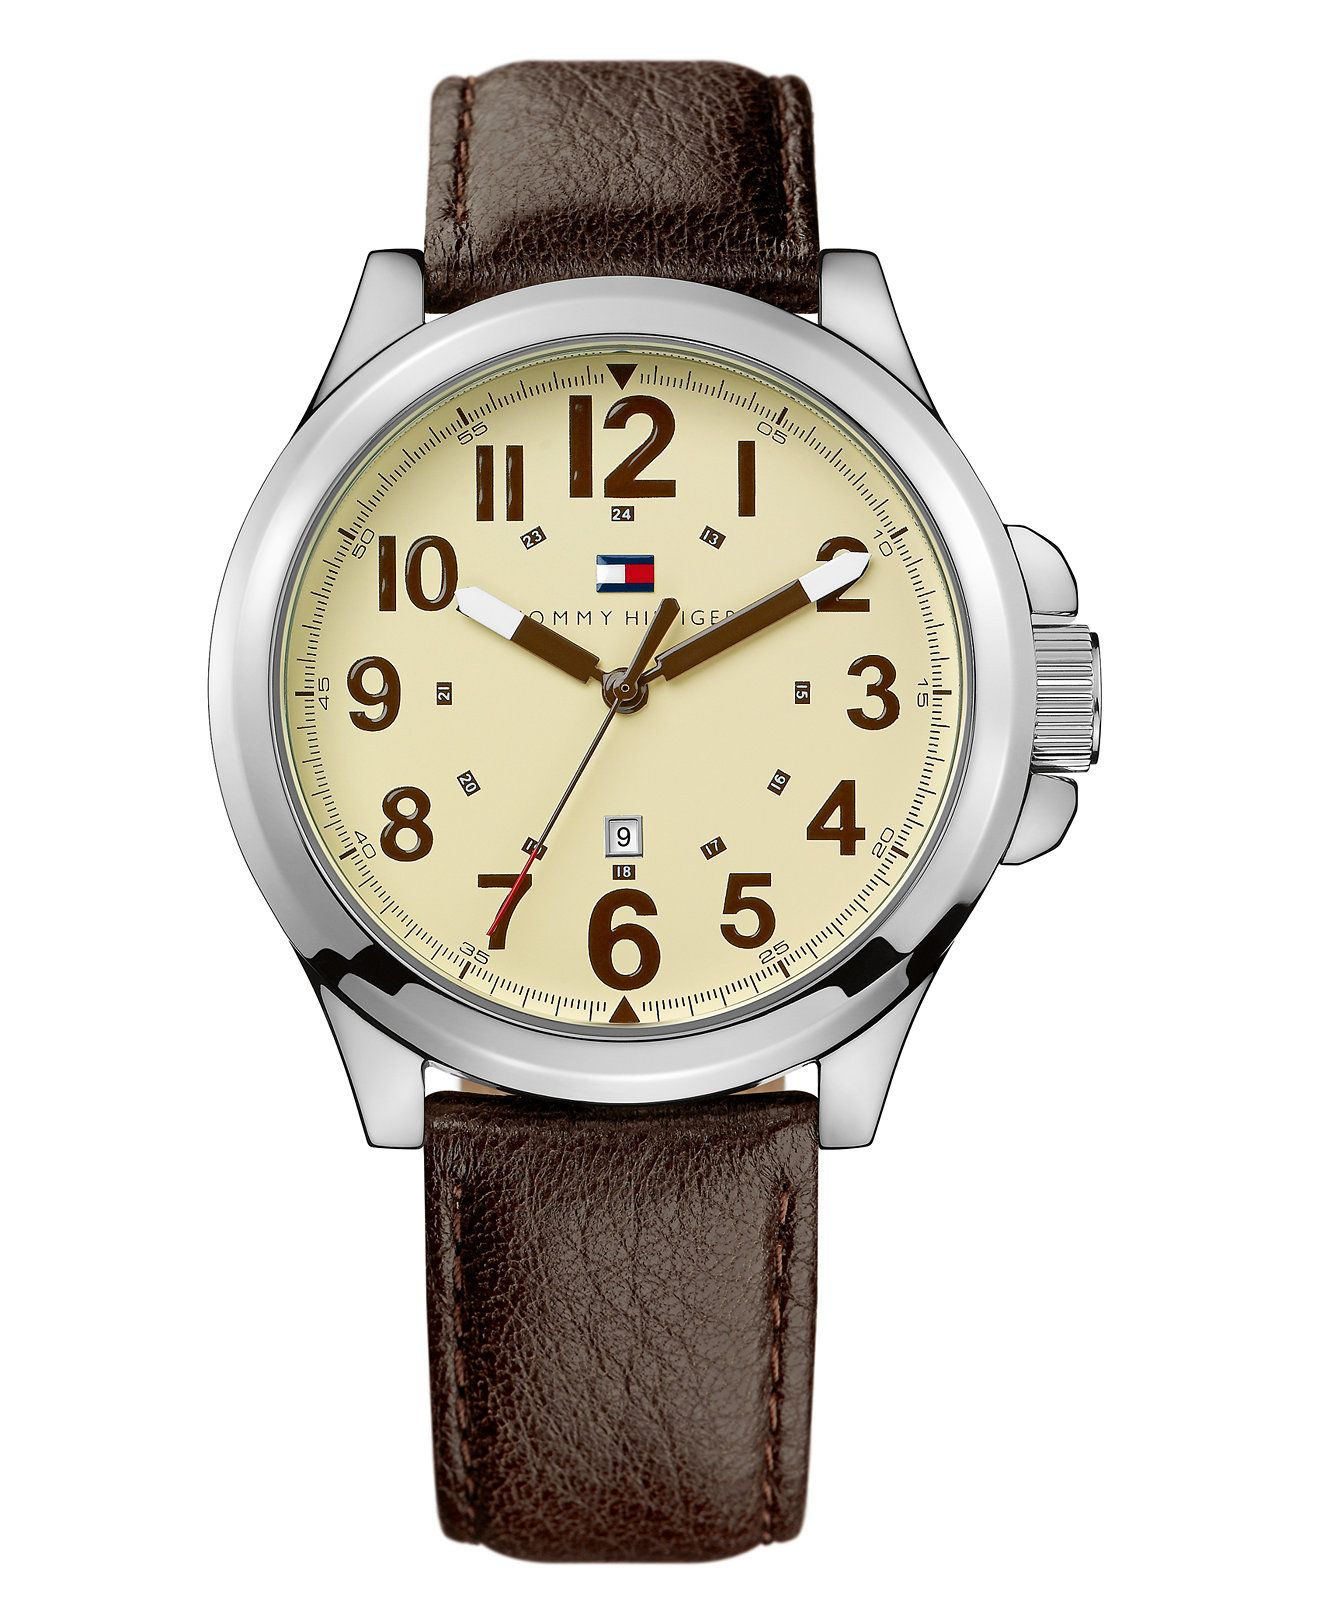 Tommy Hilfiger Watch, Brown Leather Strap 1710298 - - Macy's